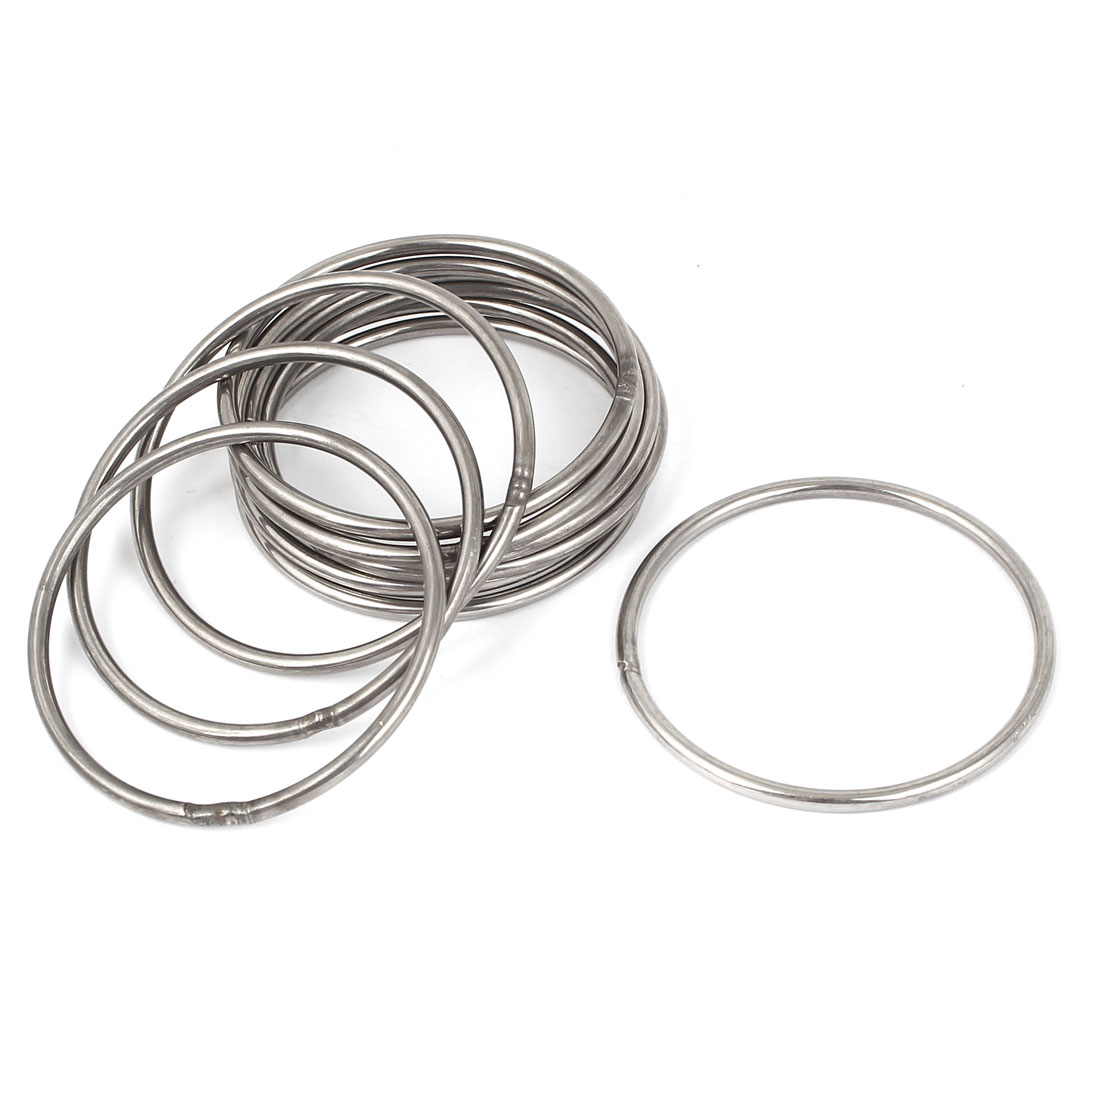 M3 x 60mm 201 Stainless Steel Webbing Strapping Welded Round O Rings 10 Pcs